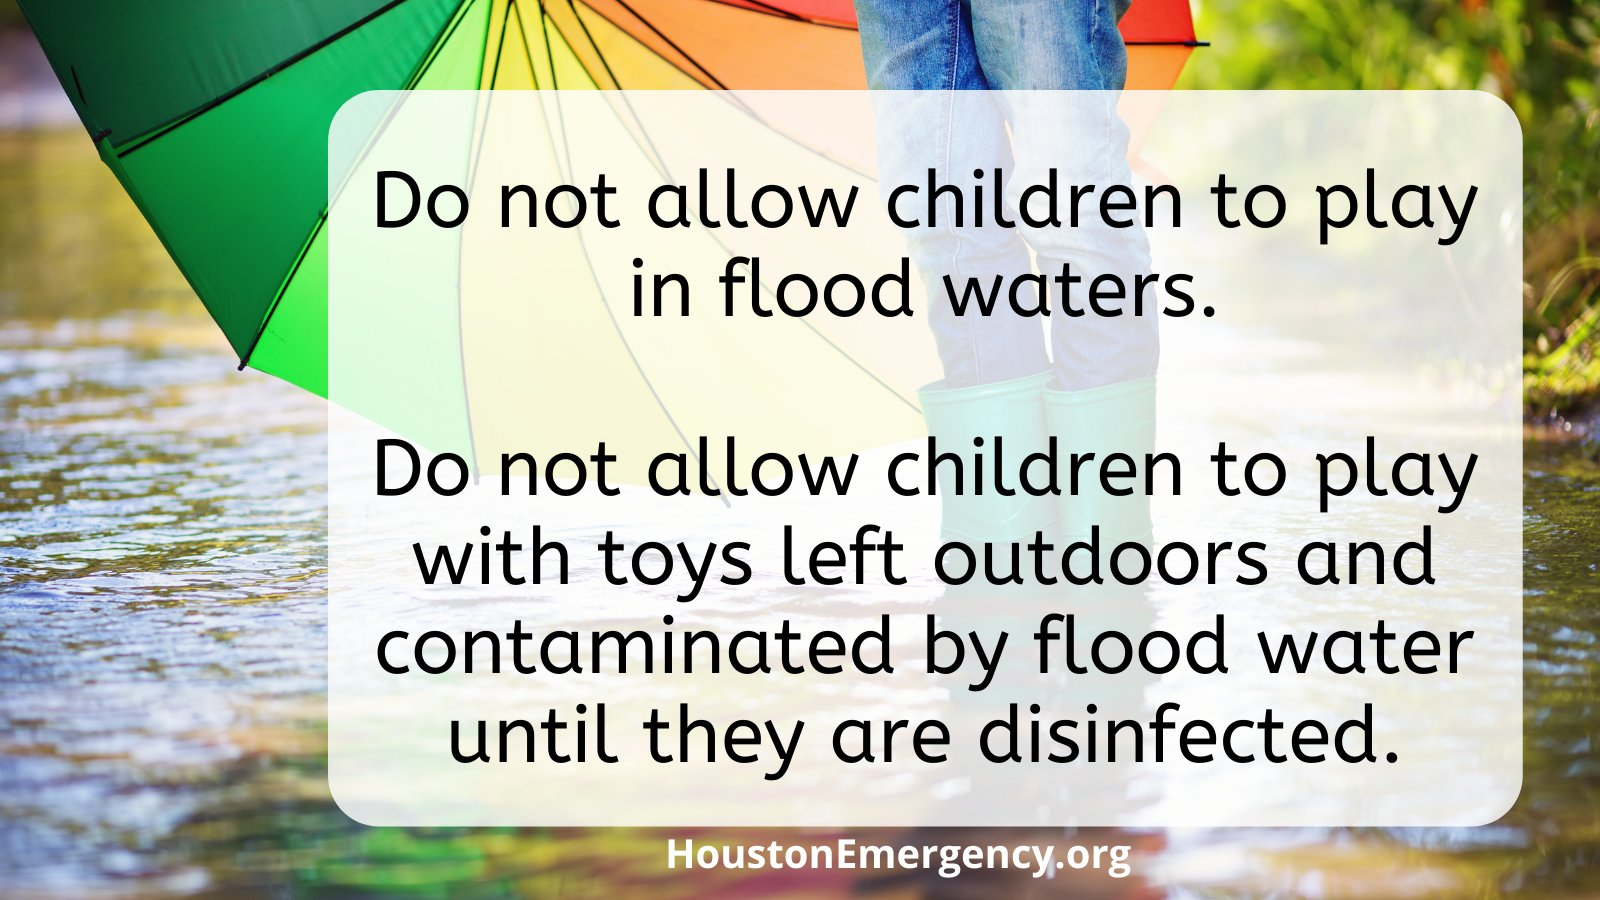 •	Do not allow children to play in flood waters. •	Do not allow children to play with toys left outdoors and contaminated by flood water until they are disinfected.